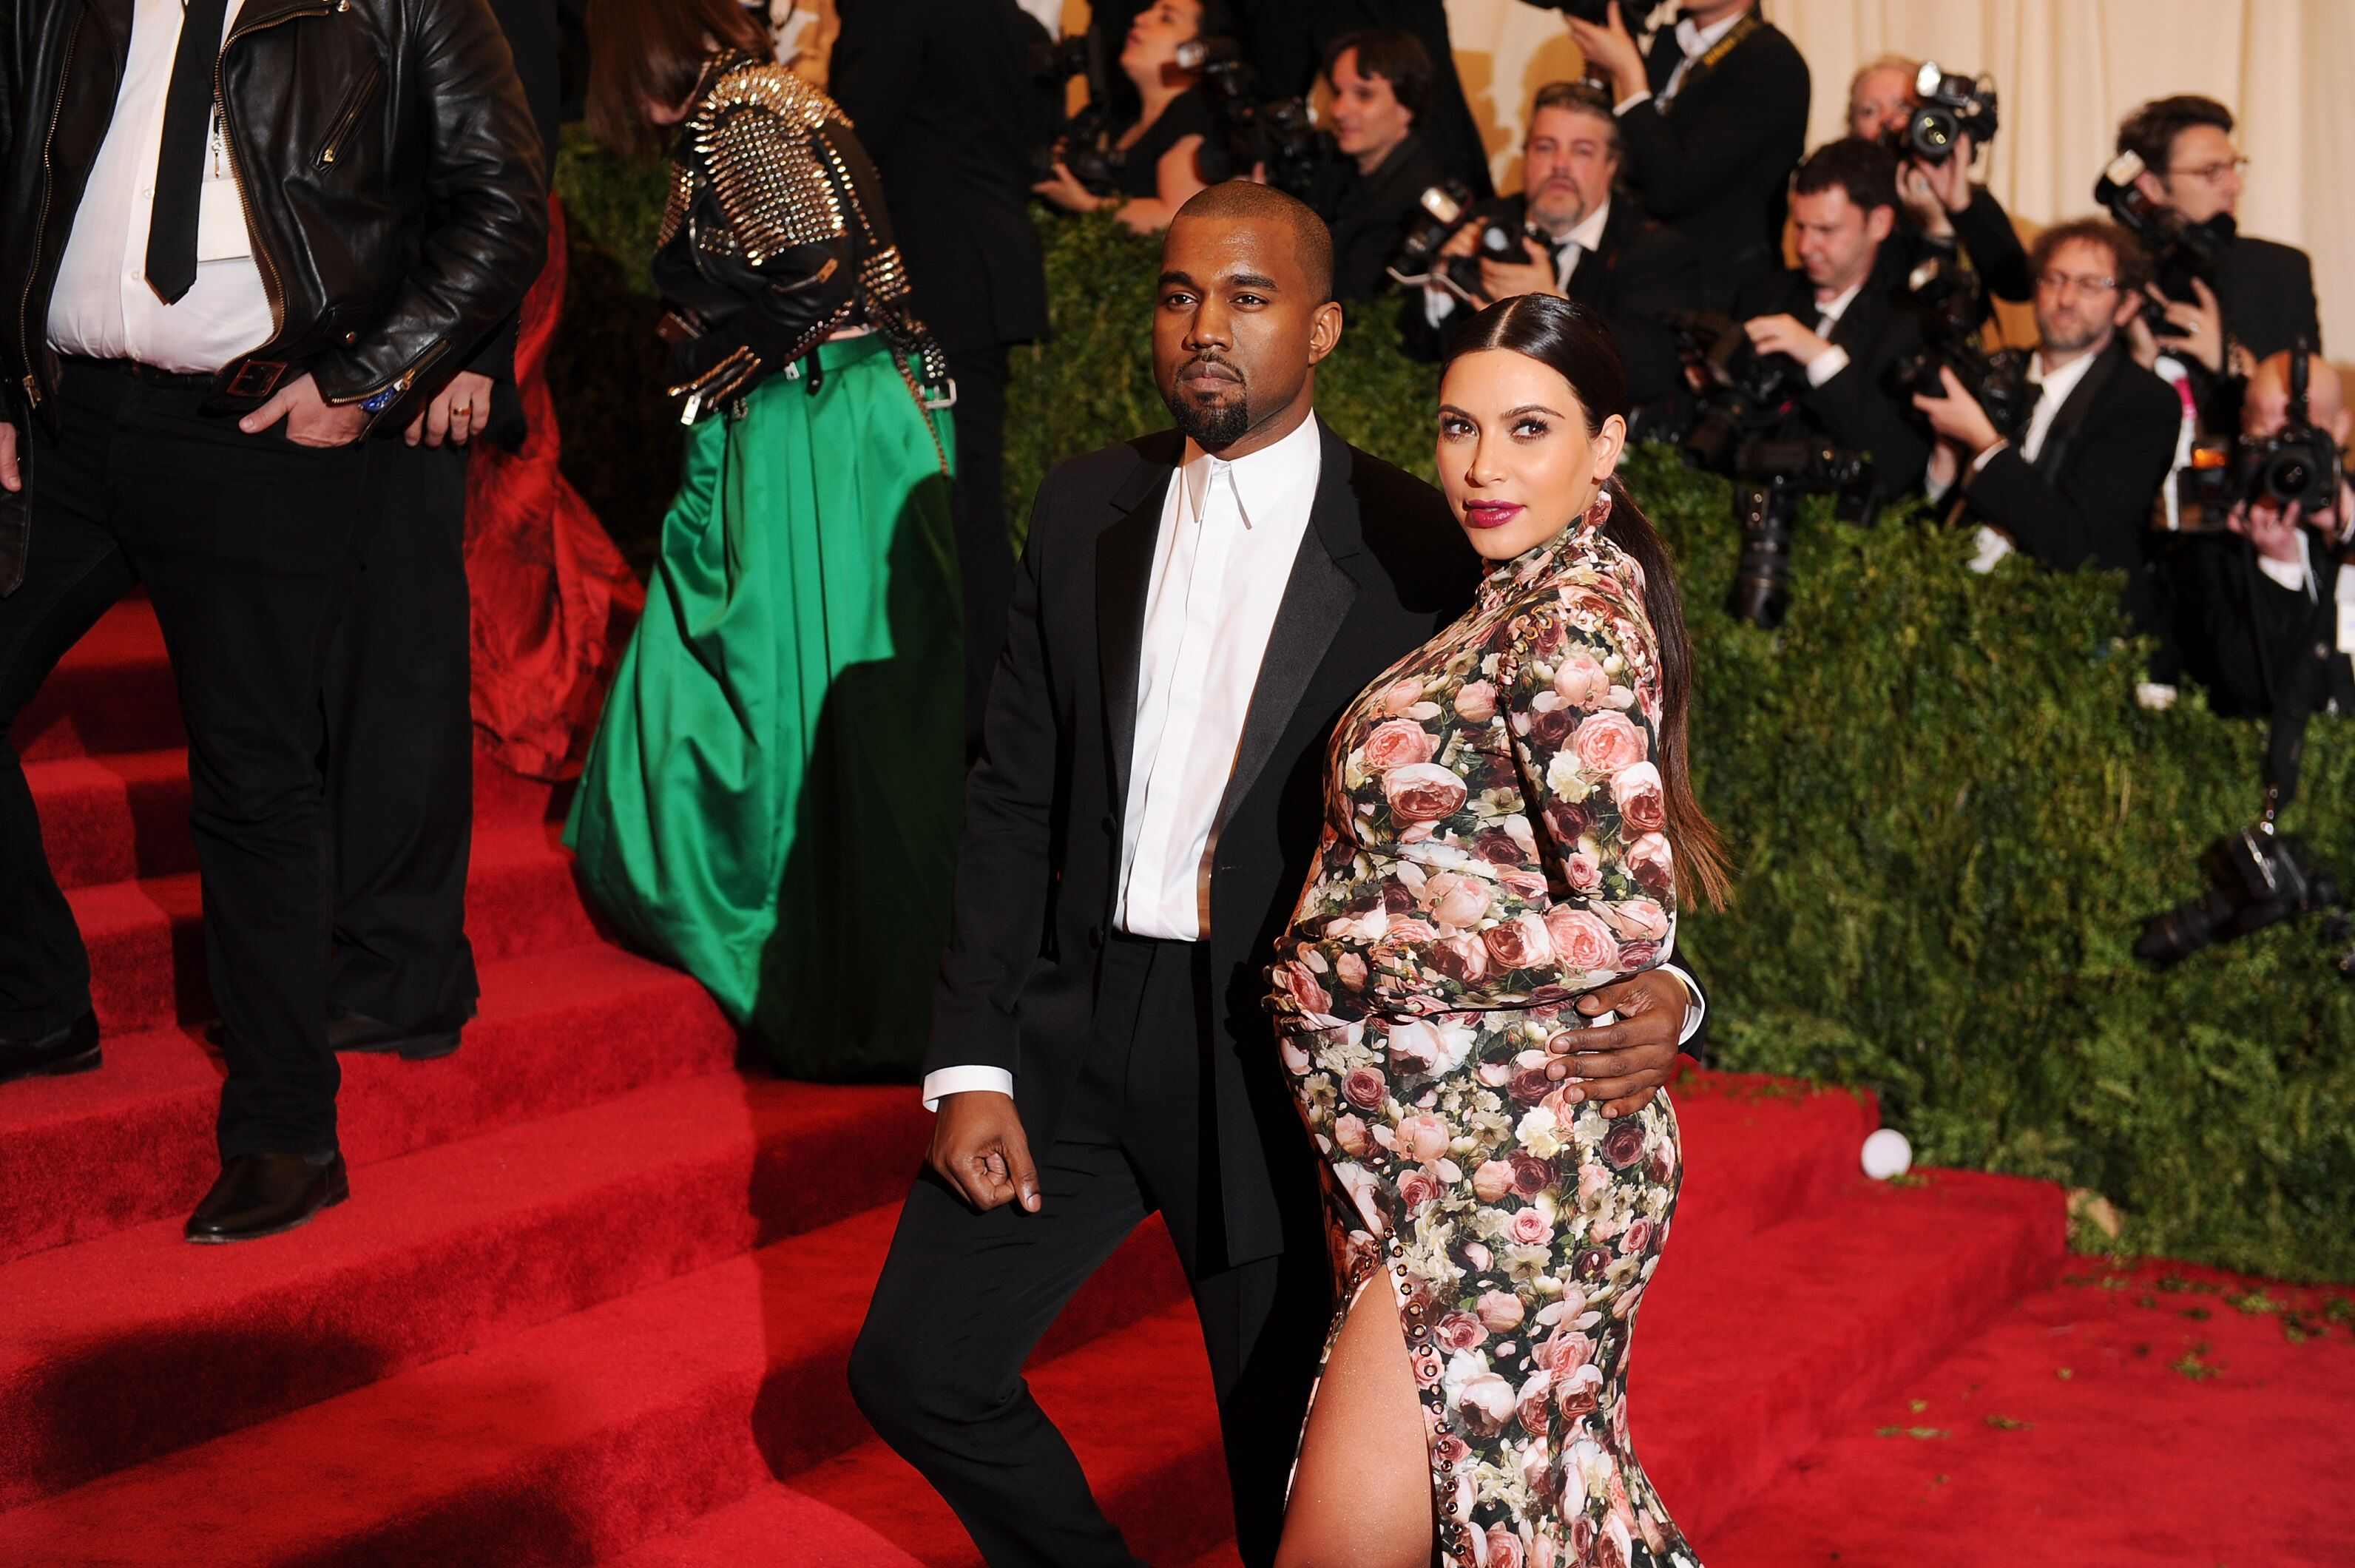 Kanye West and a heavily pregnant Kim Kardashian at the MET Gala/ Source: Getty Images